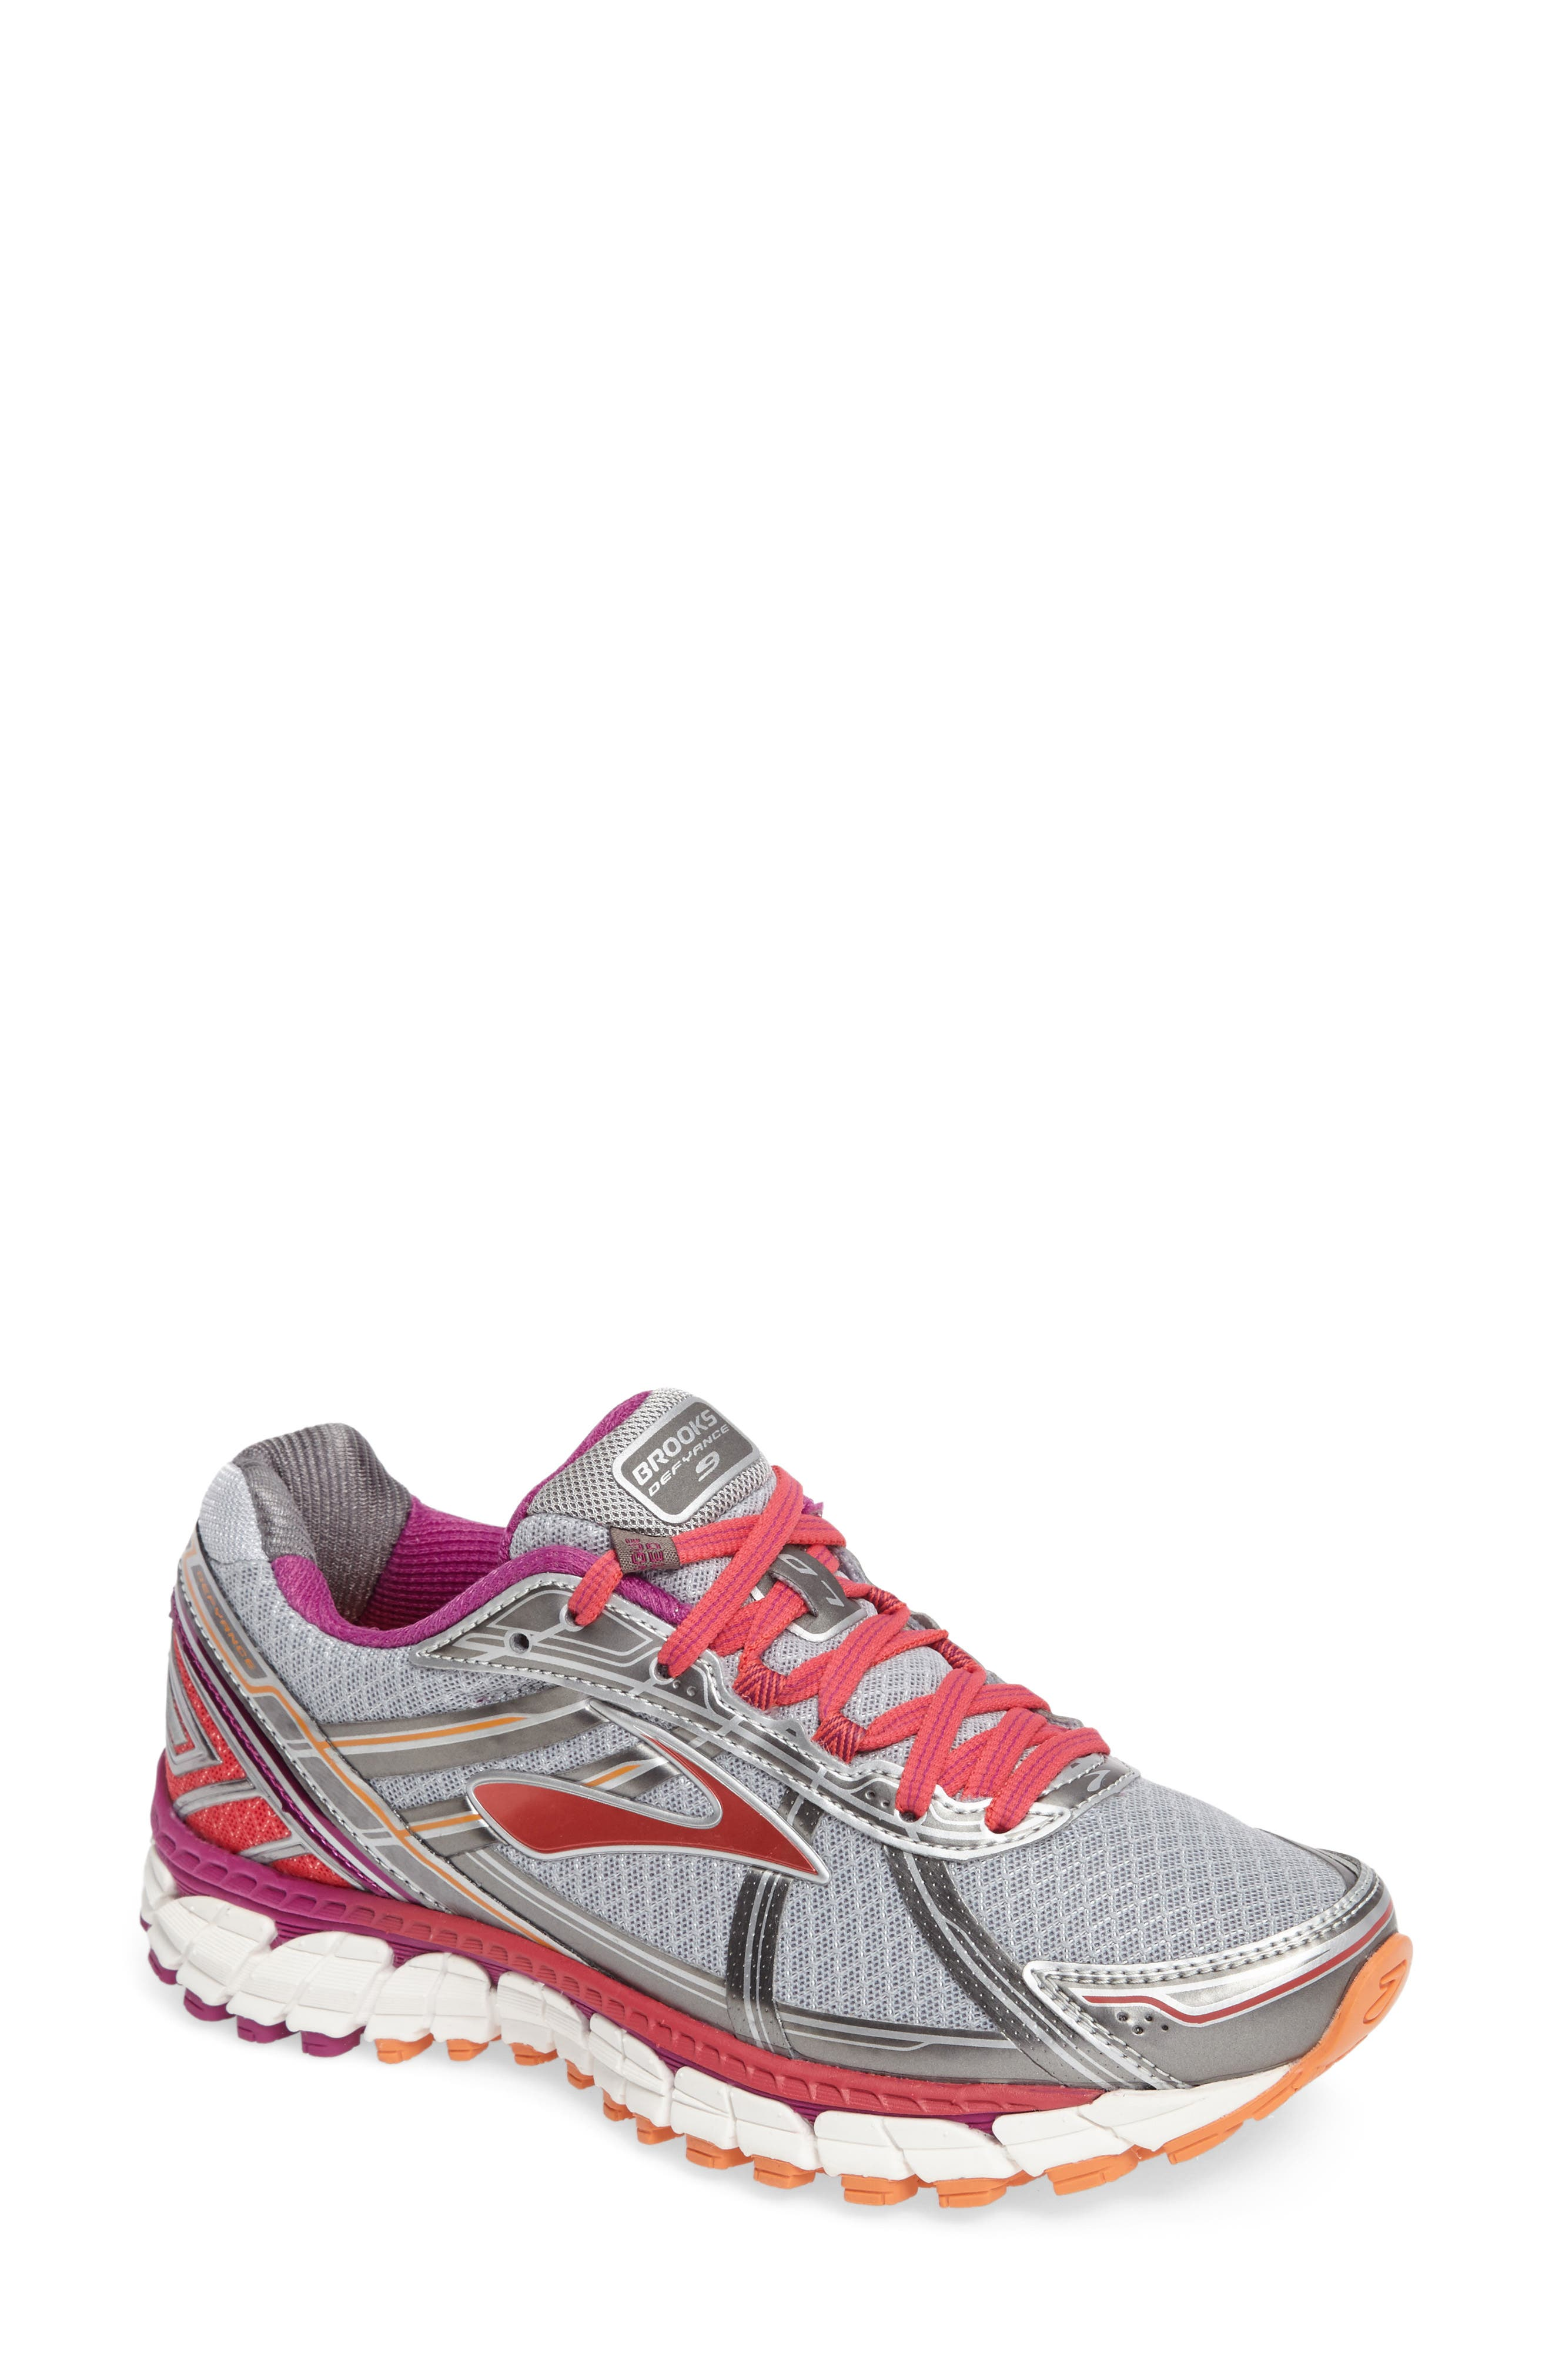 Defyance 9 Running Shoe,                         Main,                         color, 040